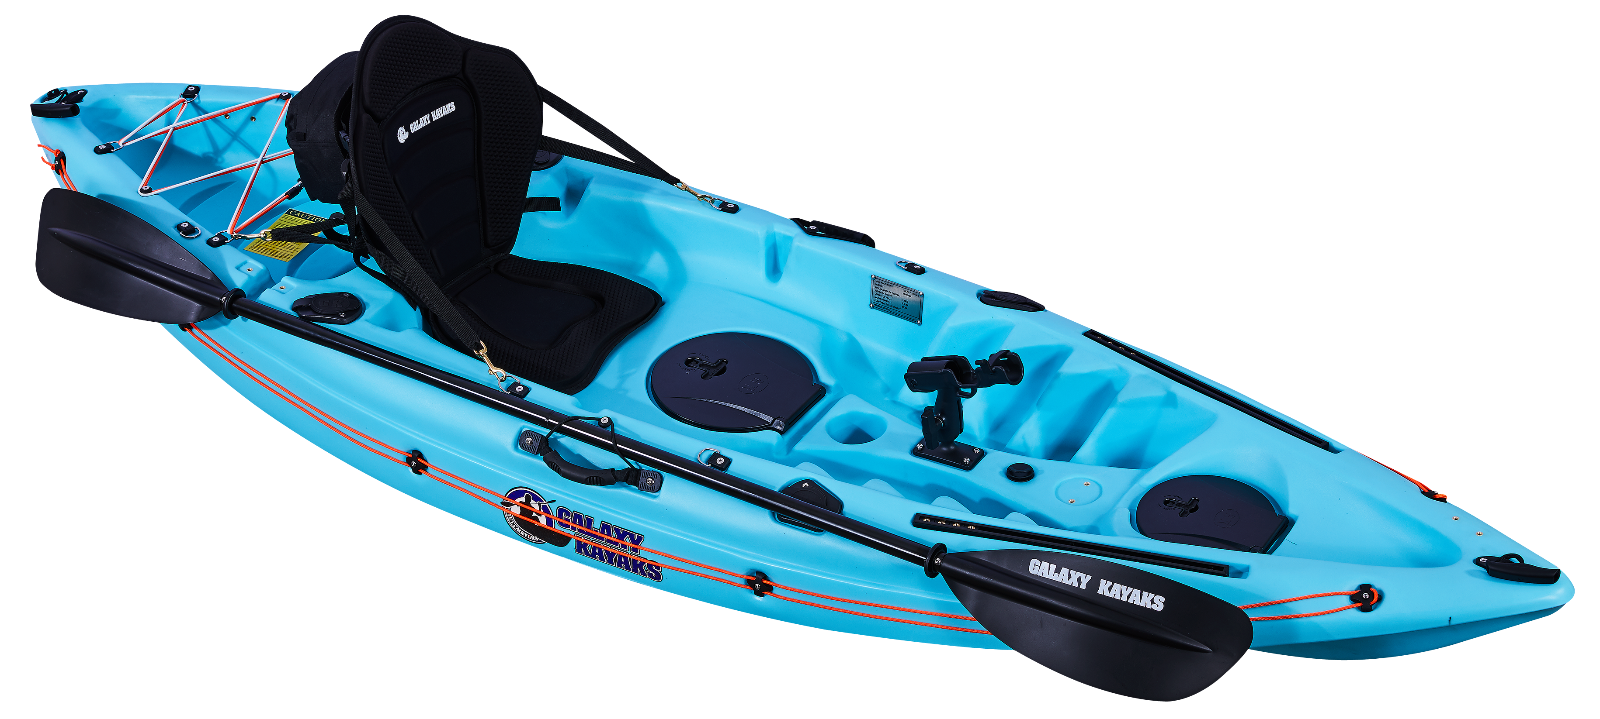 SIT ON TOP GALAXY MARLIN SEA LAKE FISHING LEISURE KAYAK CANOE